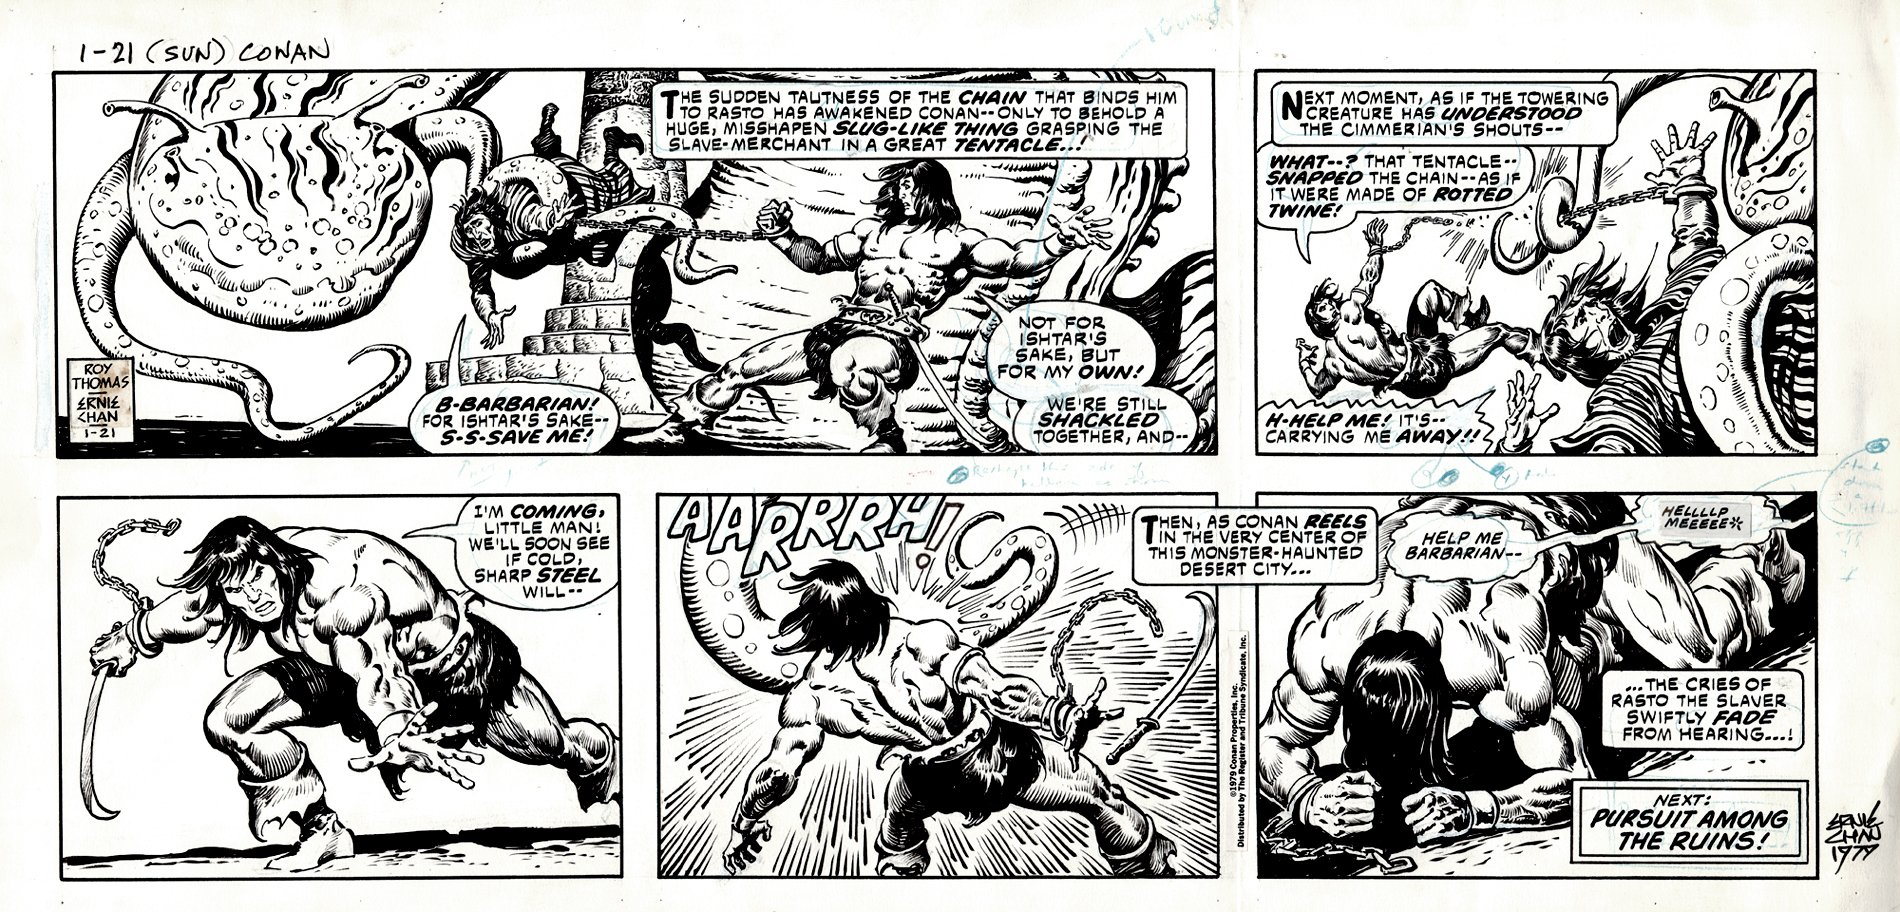 Conan Sunday Strip 1-21-79 SOLD LIVE ON 'DUELING DEALERS EPISODE #36 PODCAST ON 9-15-2021 (RE-WATCH THIS FUNNY ART SELLING SHOW HERE)